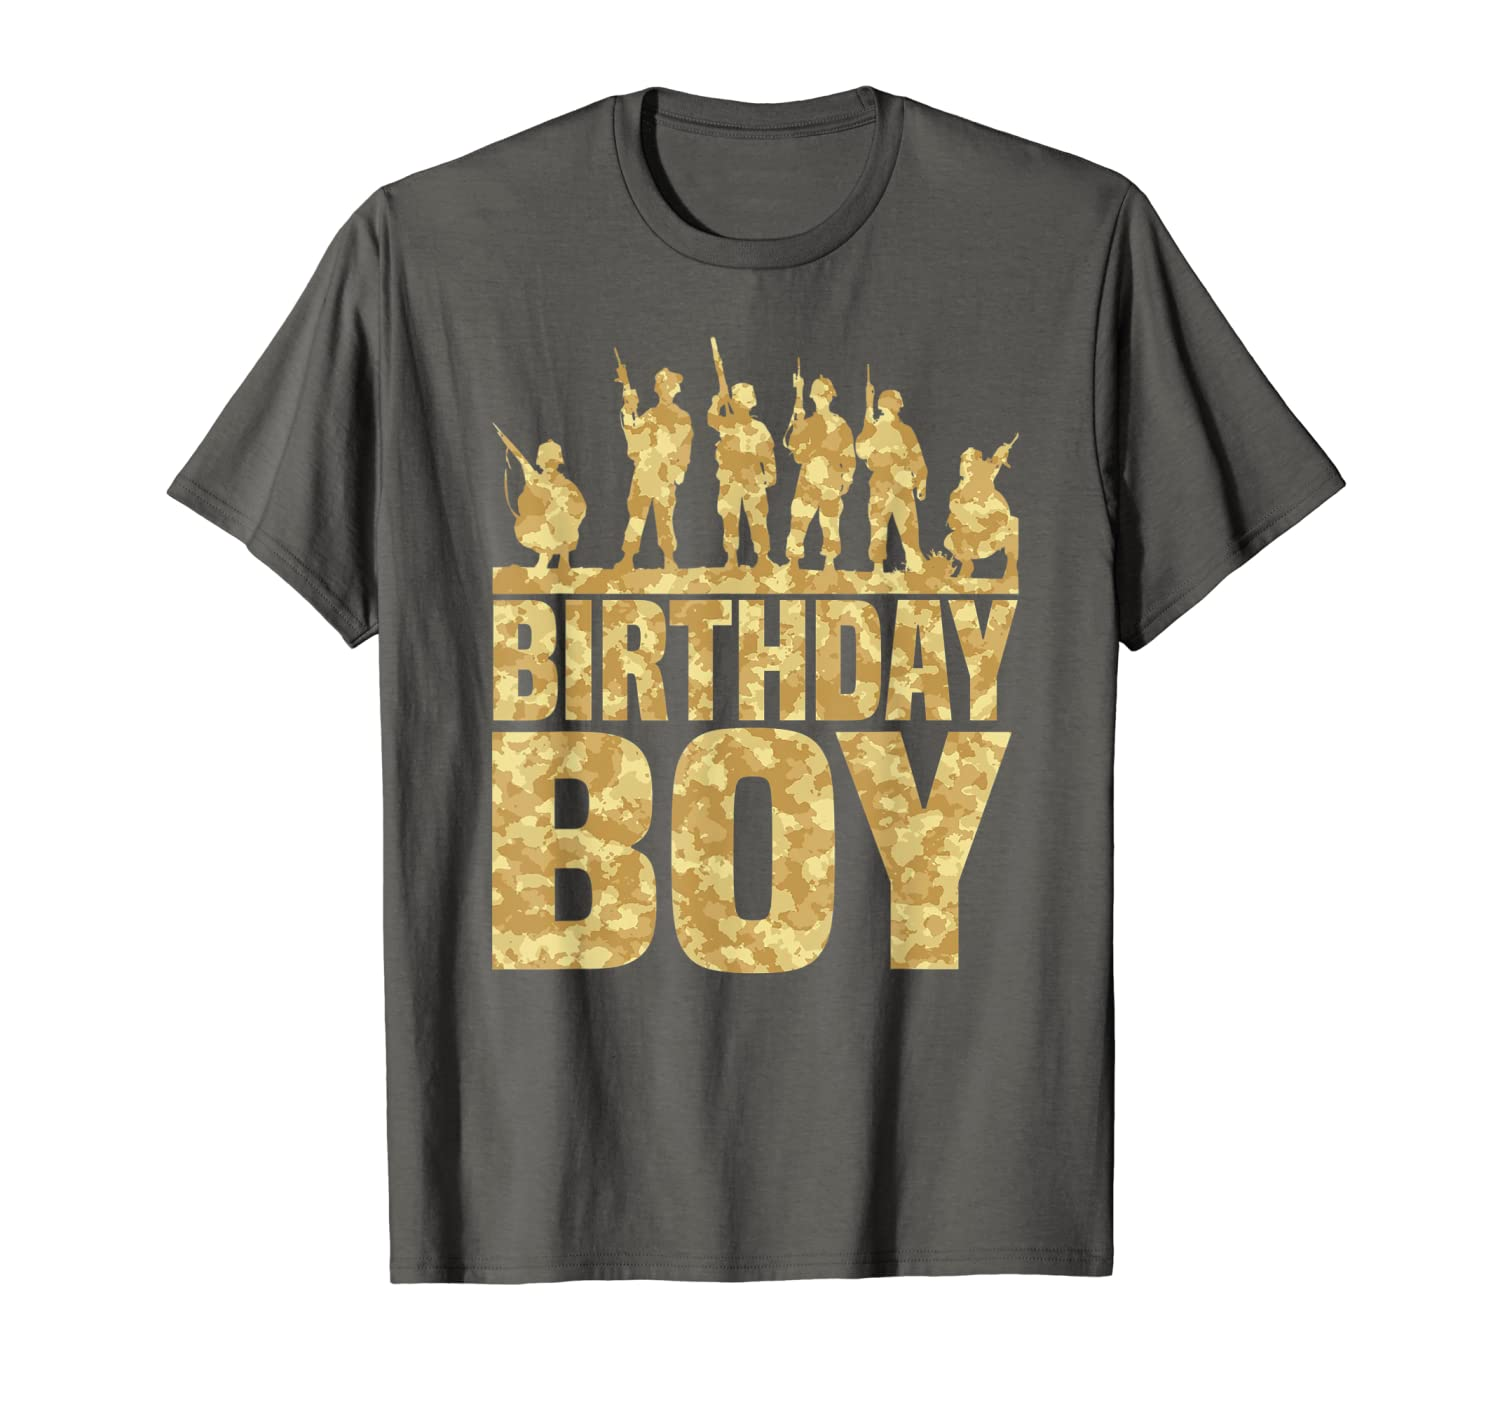 Birthday Boy Army Party Military Party Supplies Camo Gift T-Shirt-ANZ